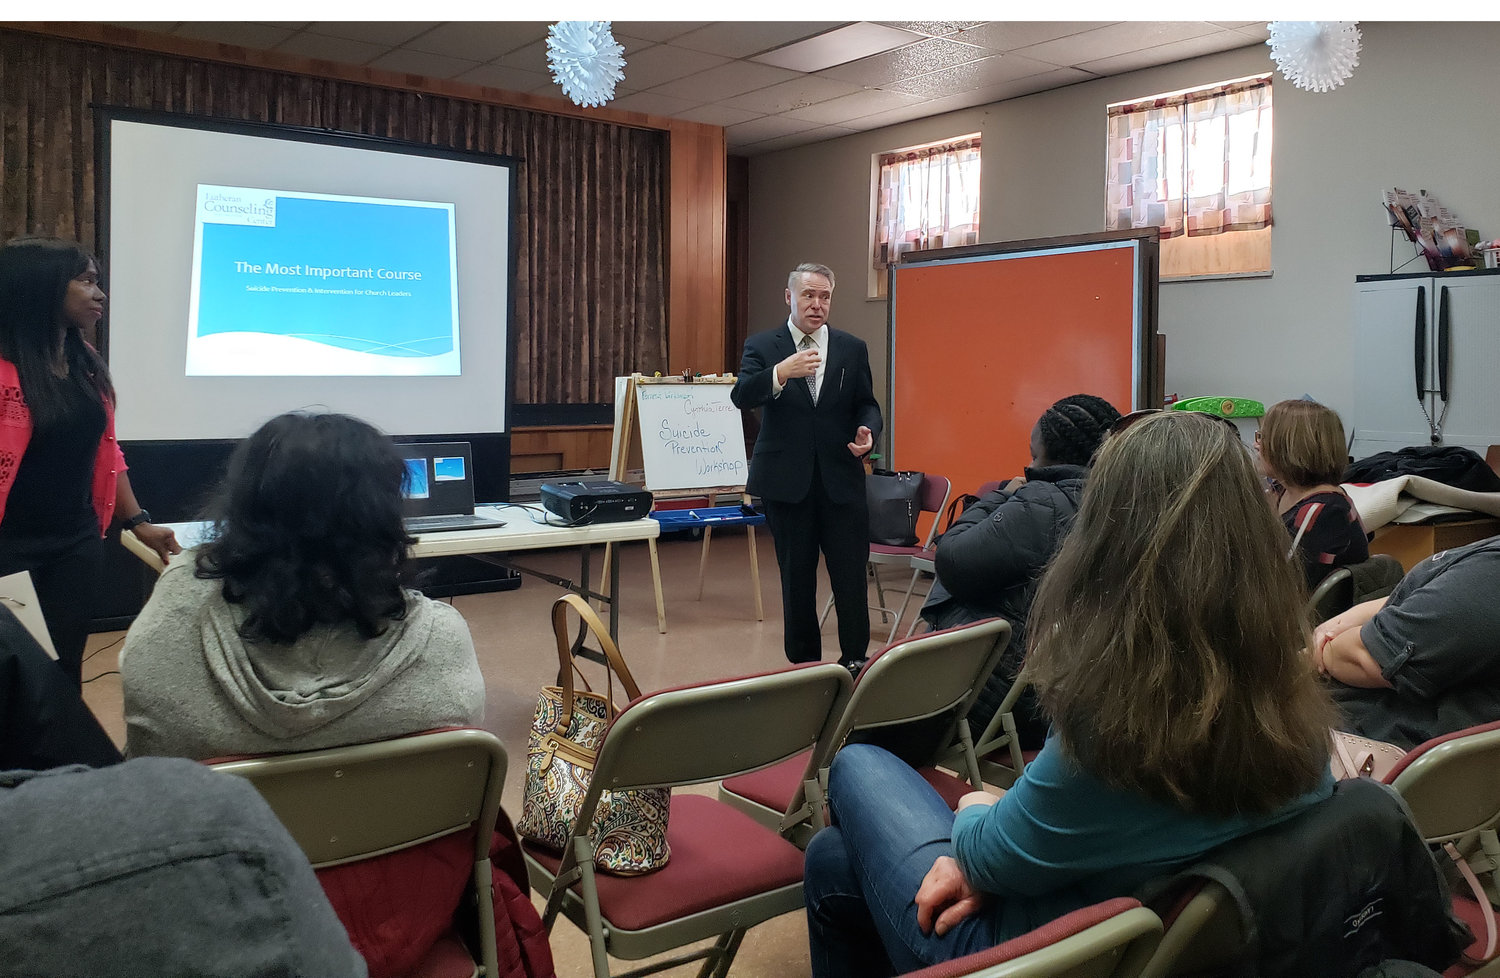 Lutheran Counseling Center counselor Forrest Parkinson shared suicide prevention tips during a training session at St. Andrew's Lutheran Church in West Hempstead.